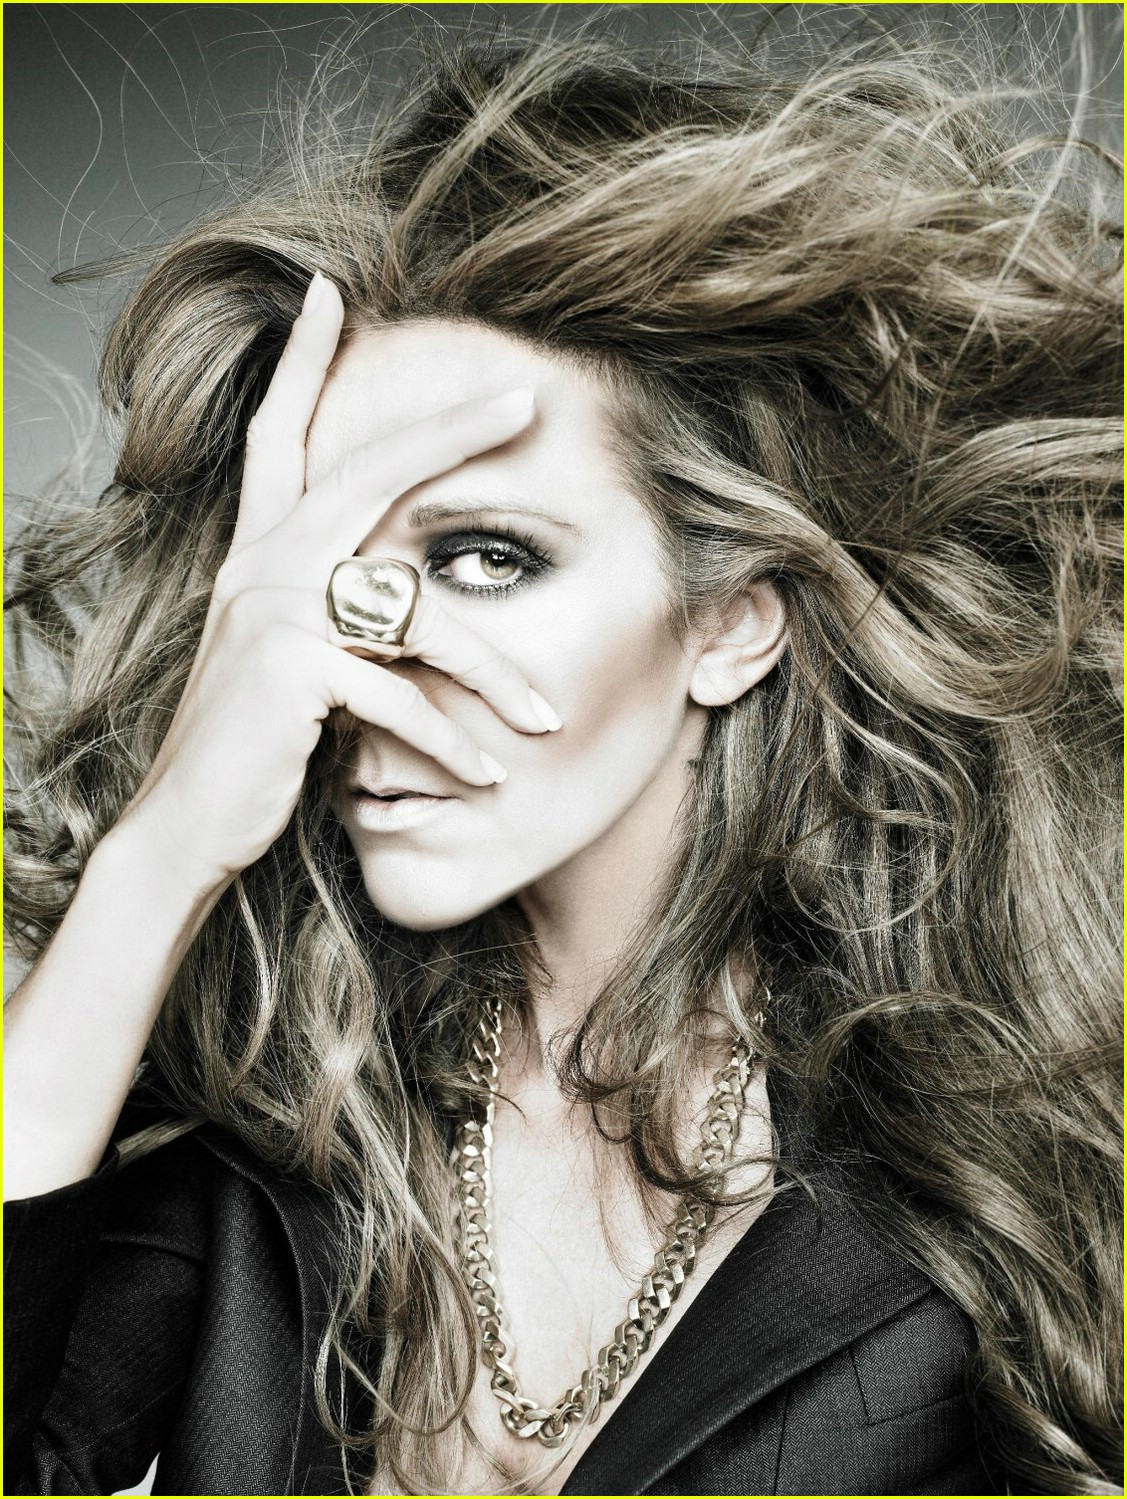 http://3.bp.blogspot.com/_8Uzl1Kzd-qM/TIFlJxncKoI/AAAAAAAAFrg/TQ1tnM0WY9Q/s1600/celine-dion-taking-chances-photo-shoot-05.jpg